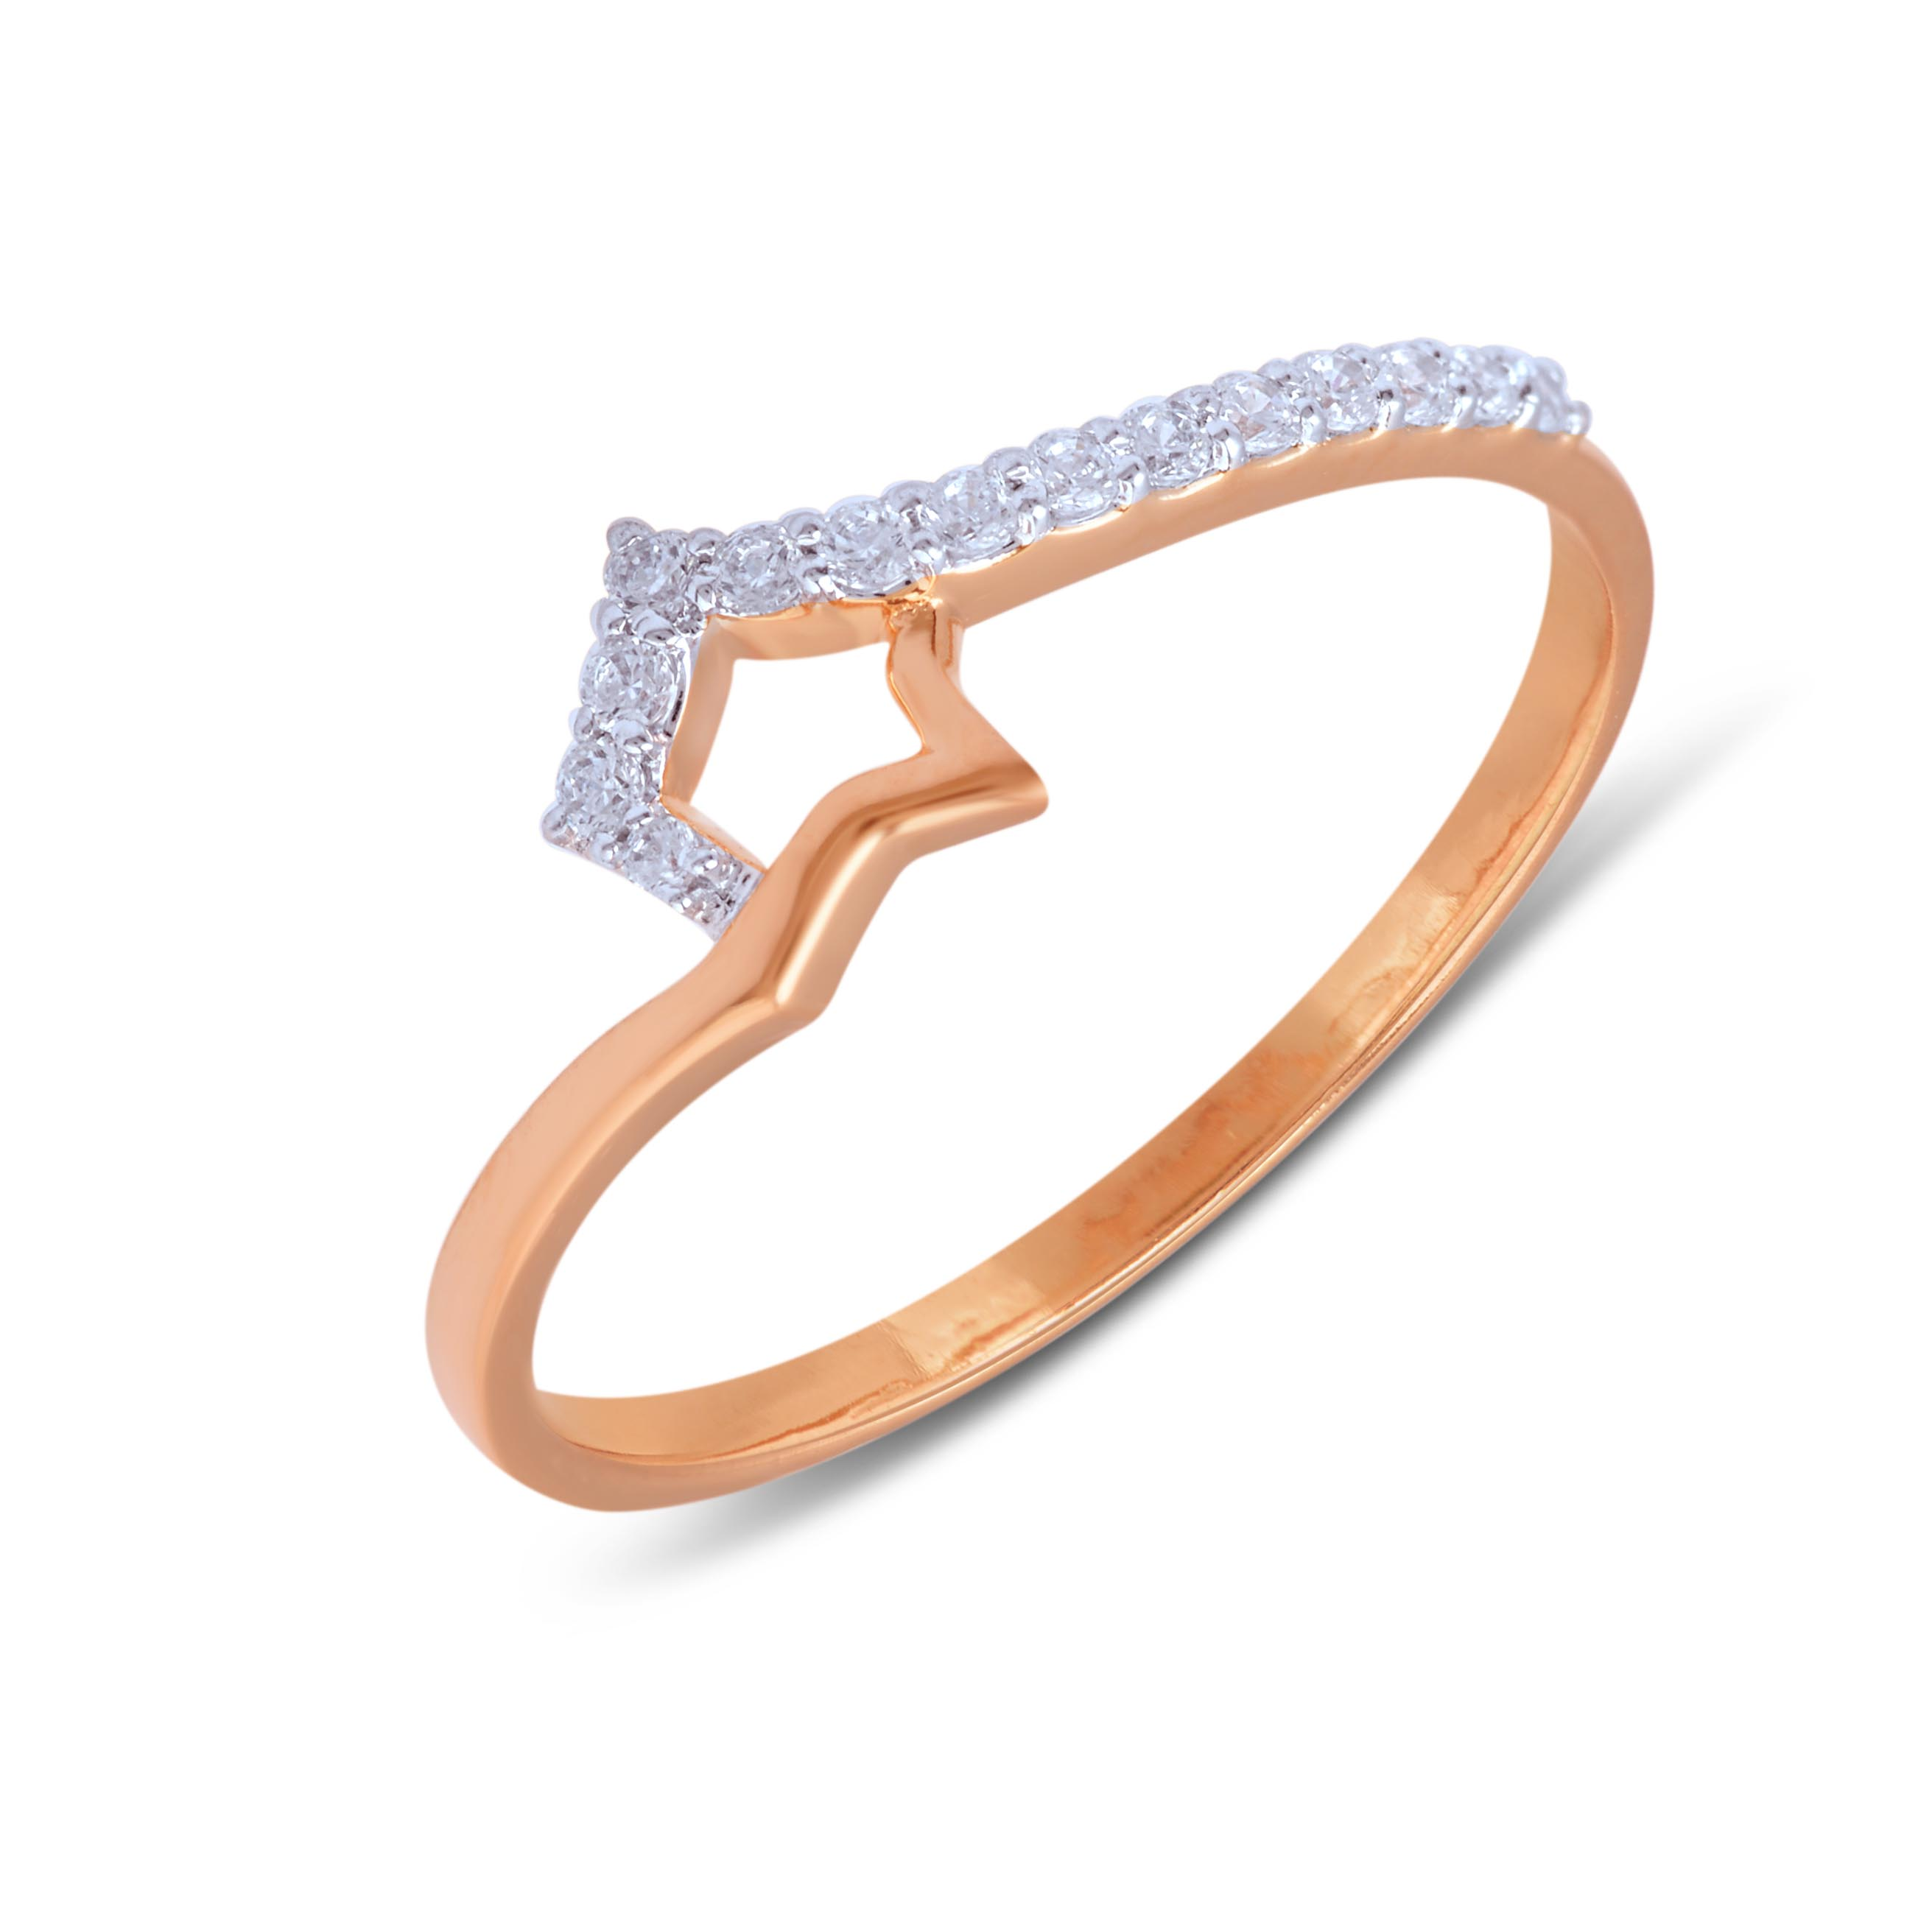 Sumptuous Diamond Finger Ring